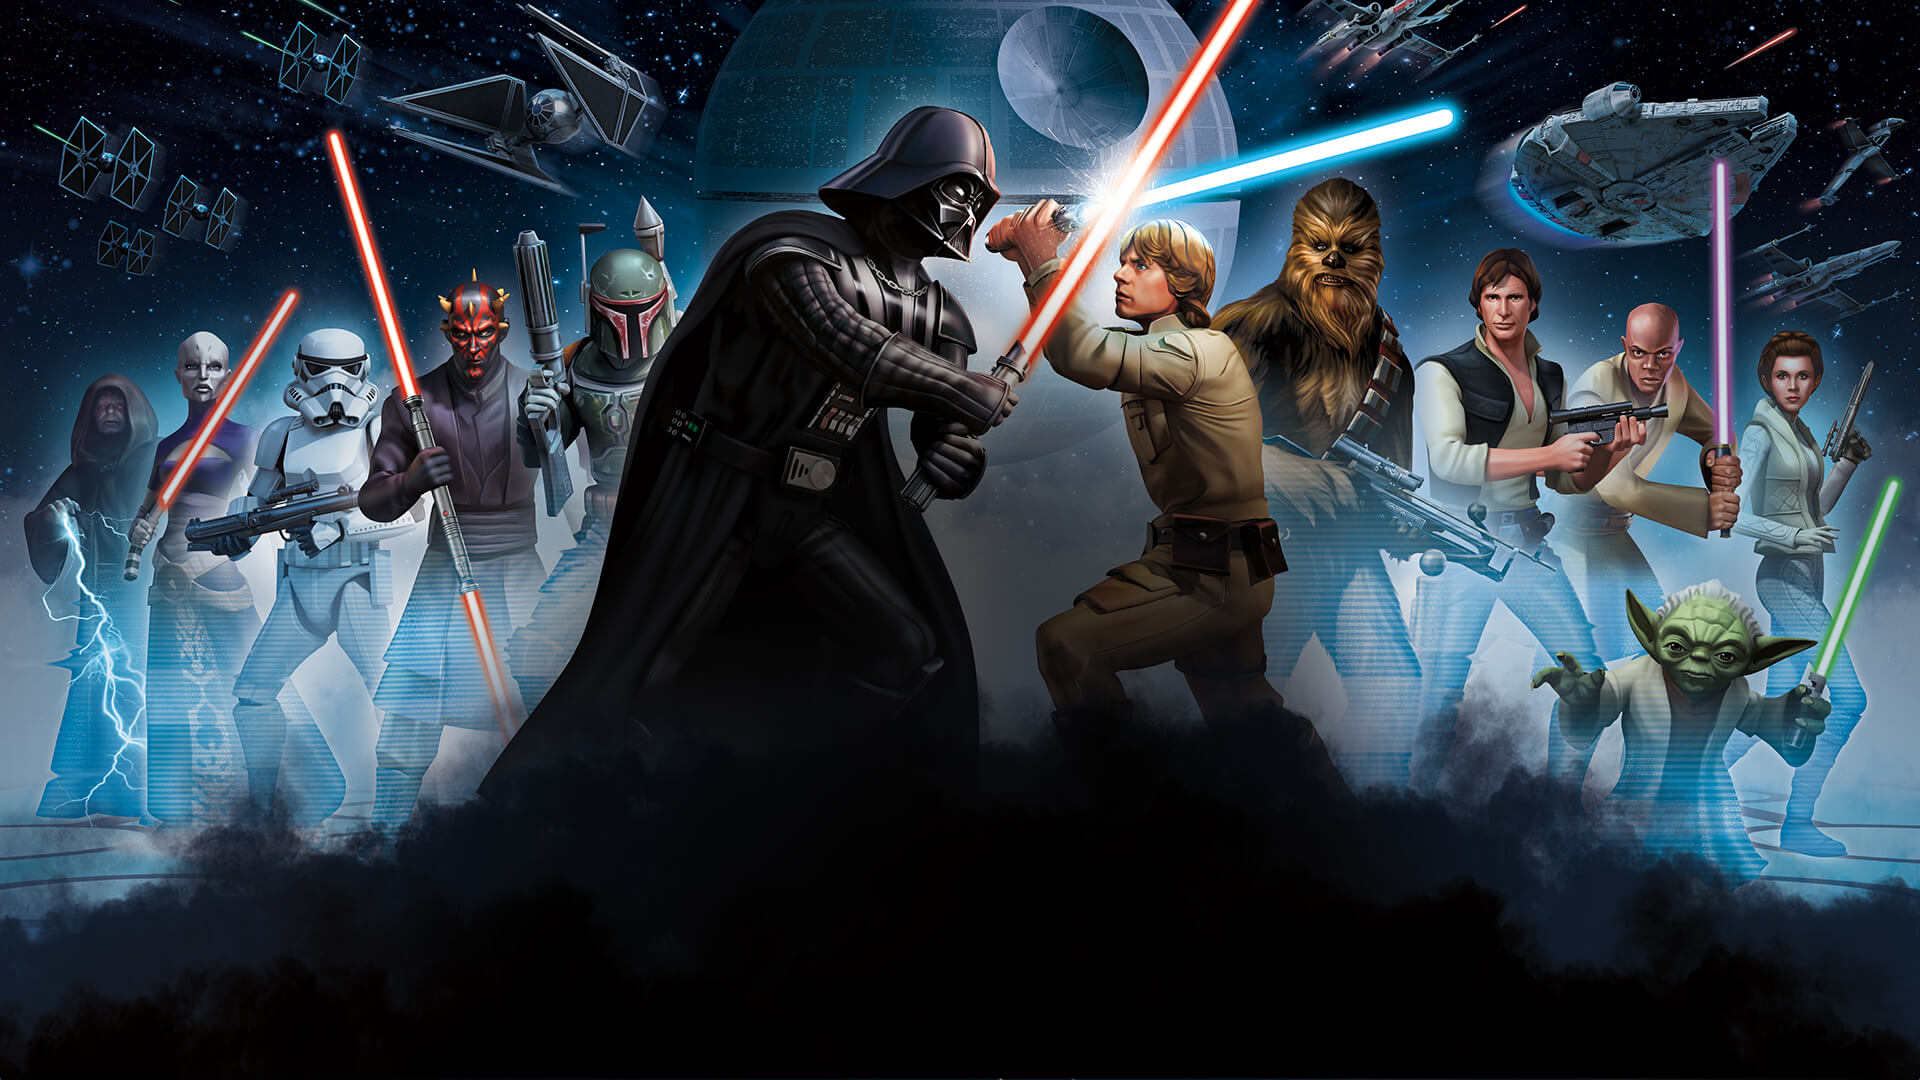 Free Download Star Wars Wallpaper Star Wars Galaxy Of Heroes Background 1920x1080 For Your Desktop Mobile Tablet Explore 27 Star Wars Galaxies Background Star Wars Galaxies Wallpaper Star Wars